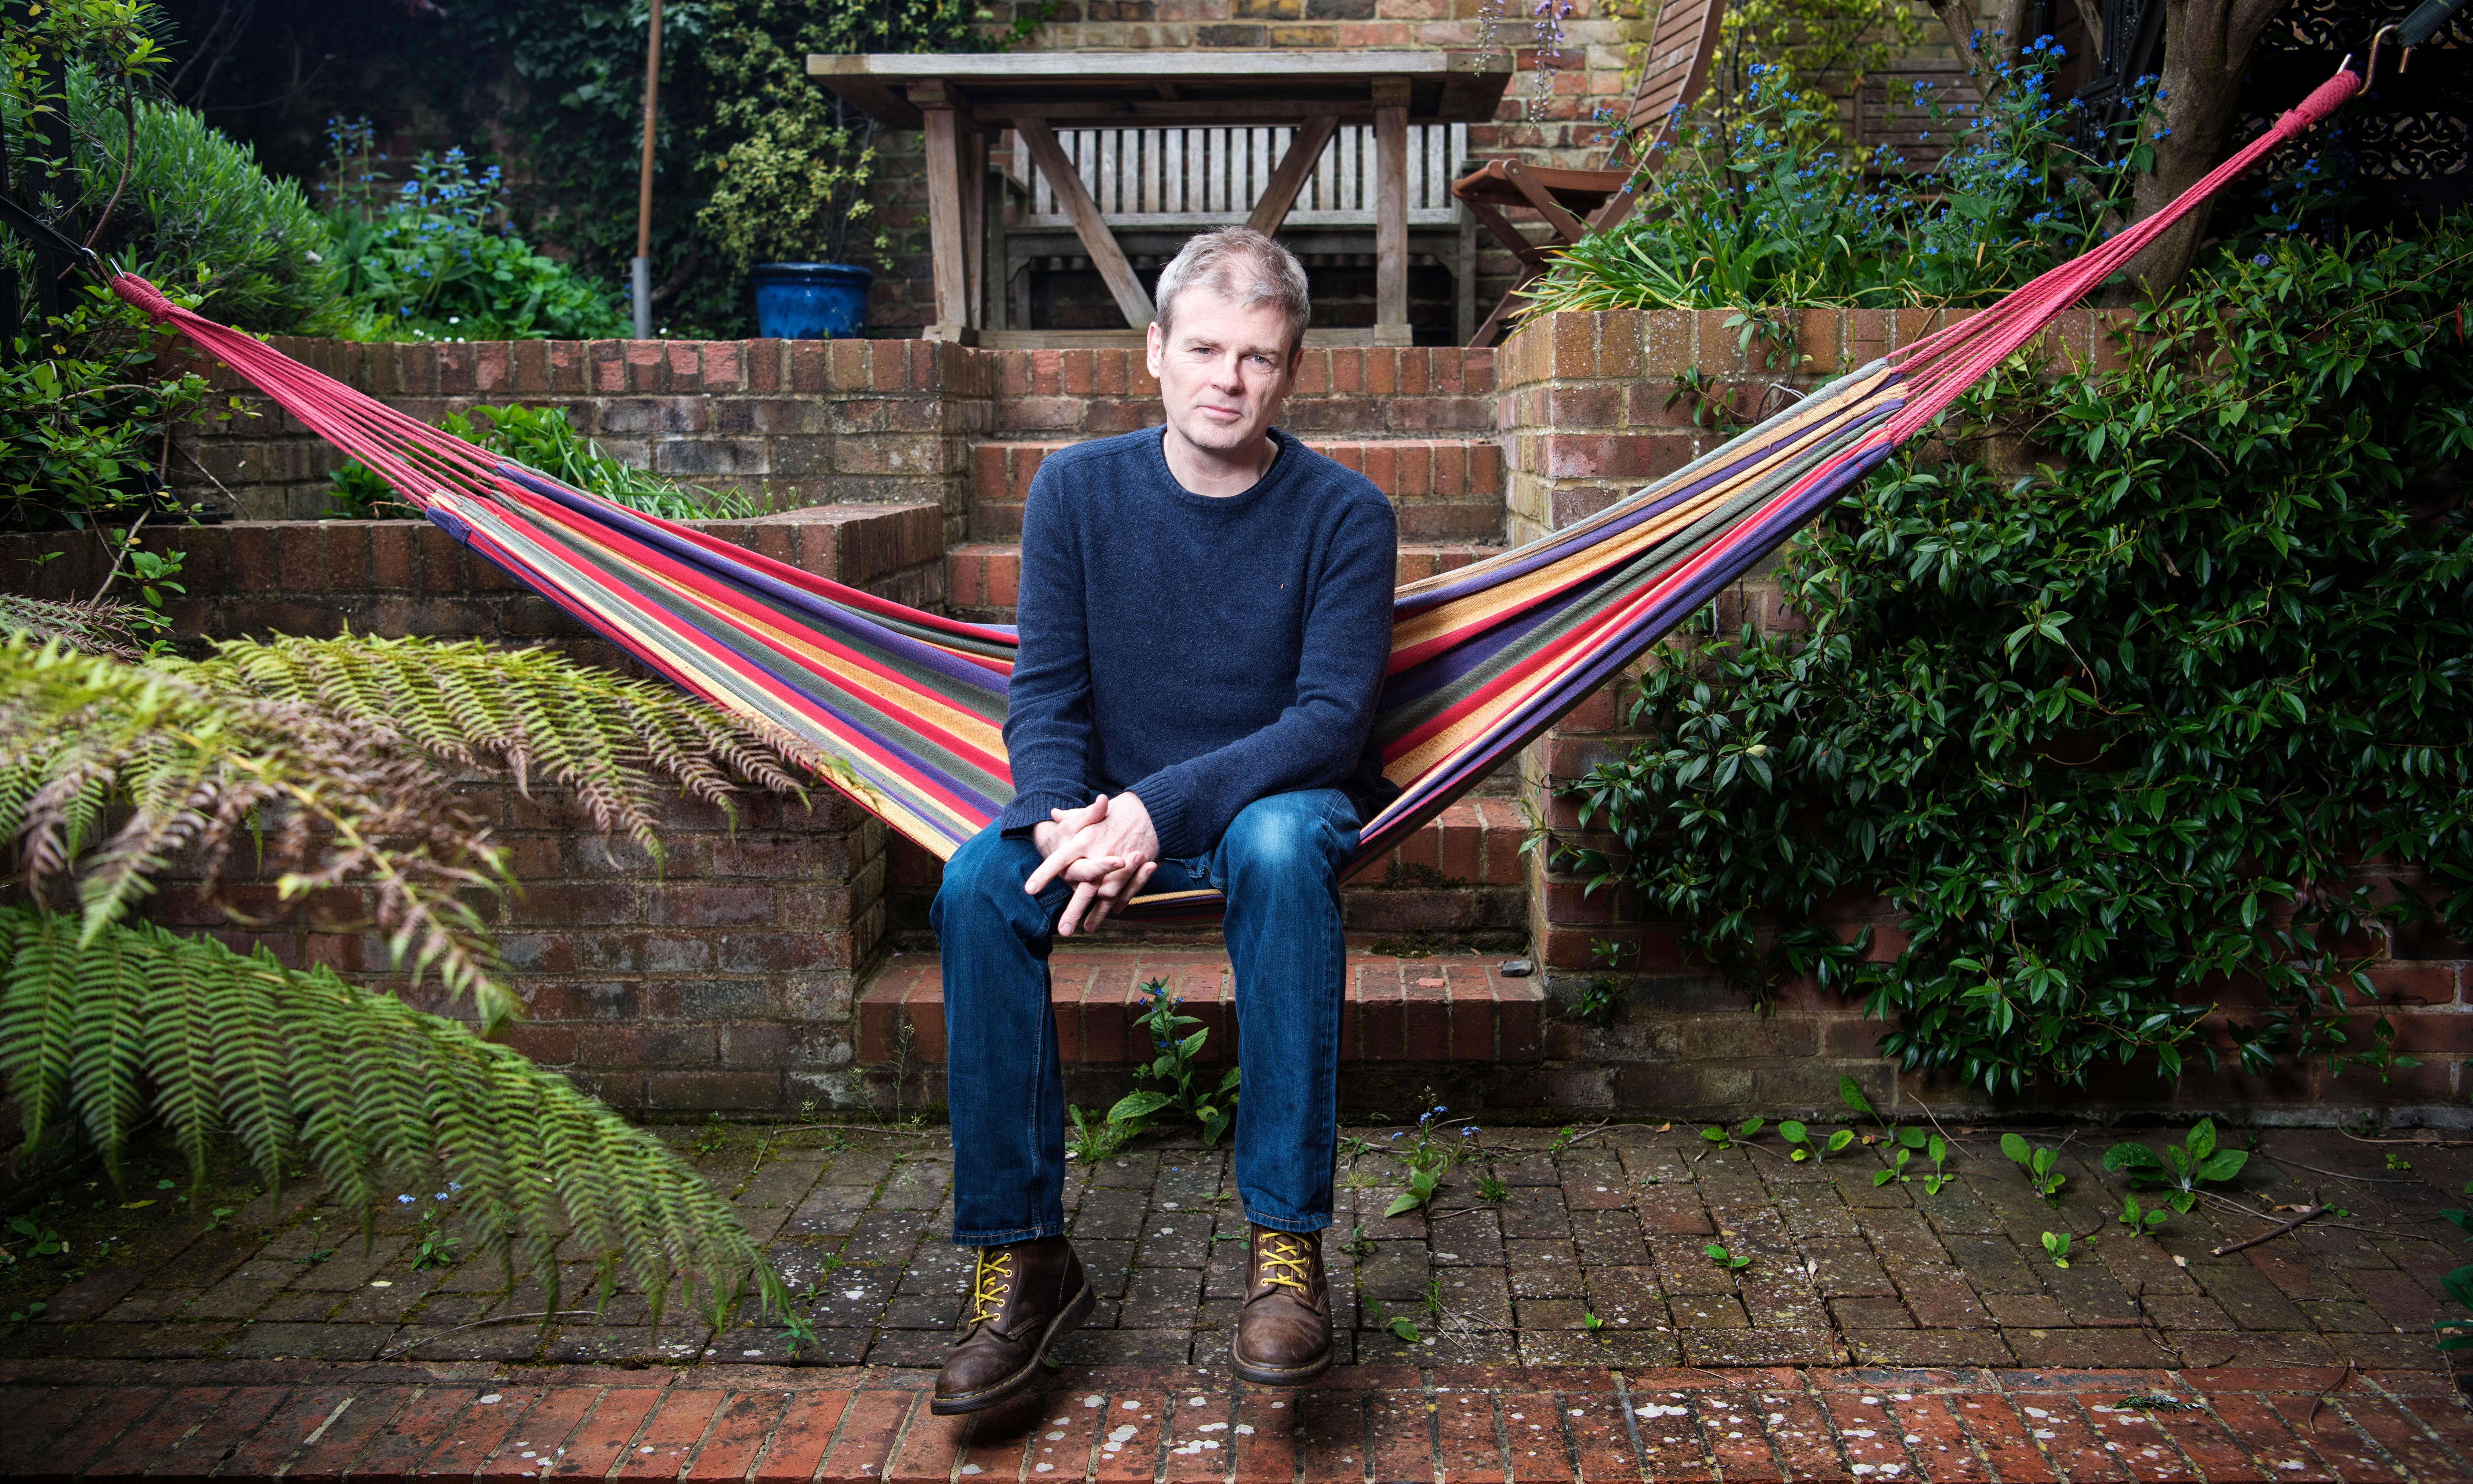 Mark Haddon: 'The only books I wish I'd written are better versions of my own'